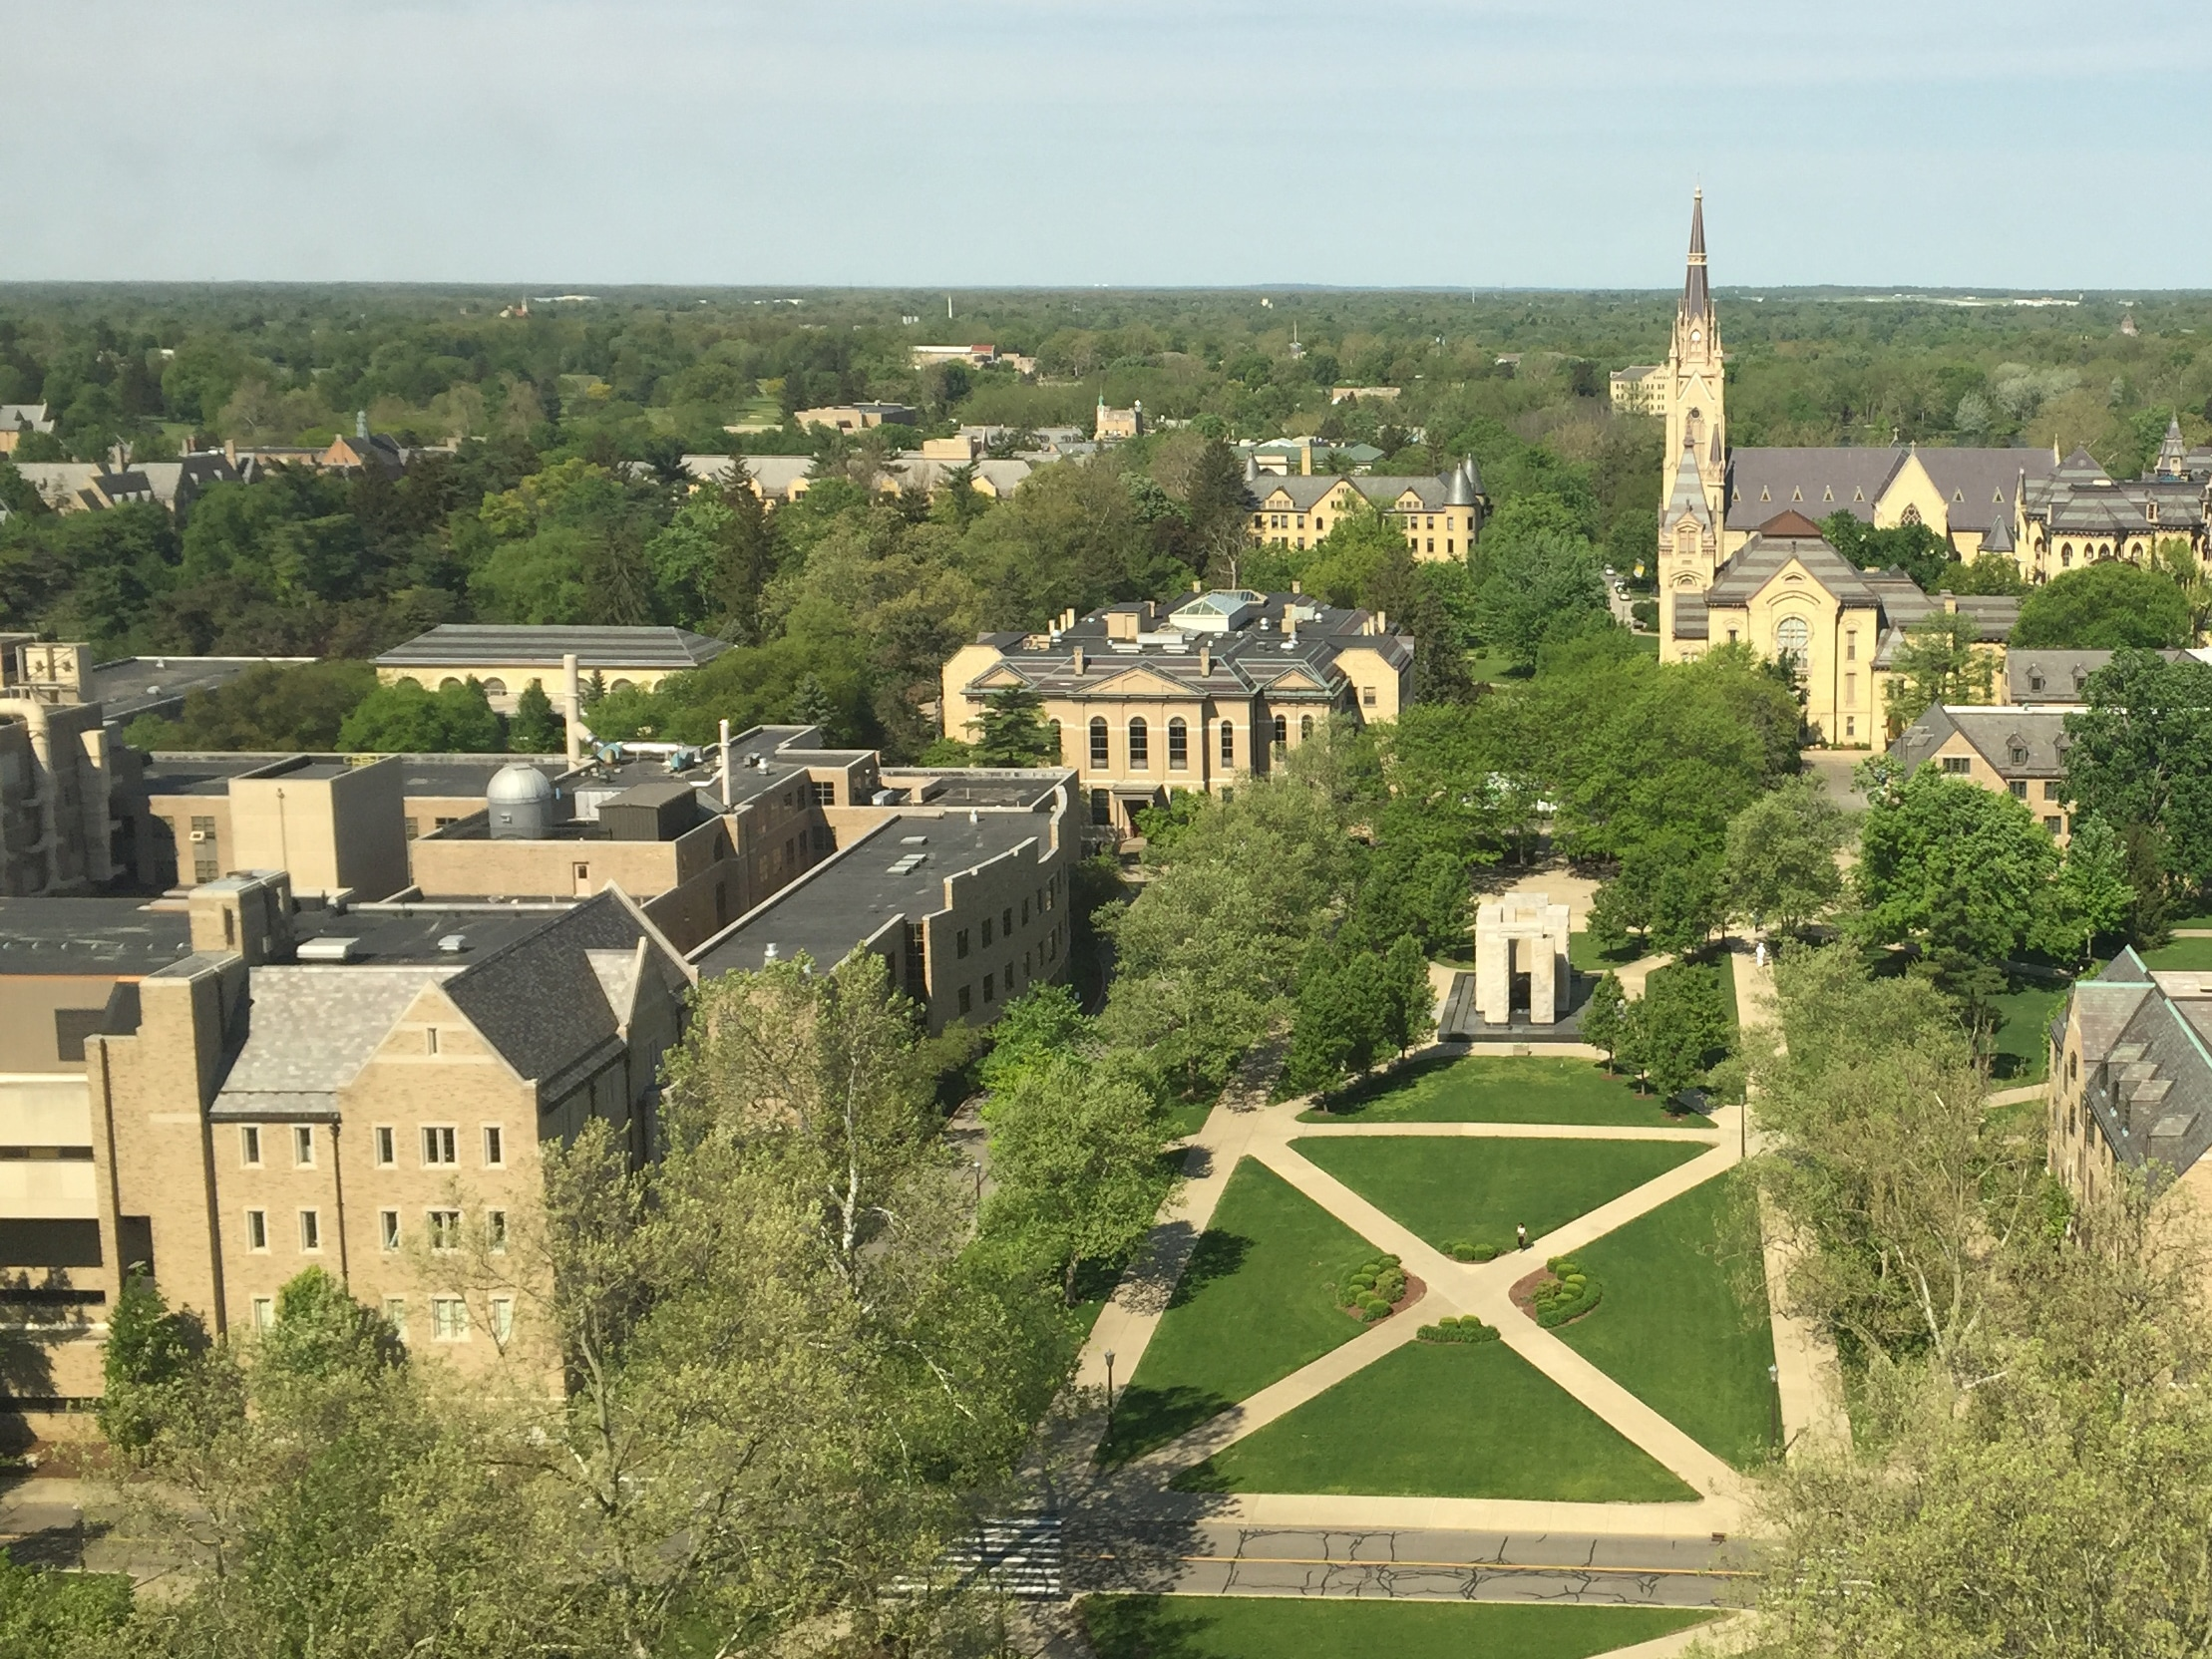 Bradley Company has served as a property manager for University of Notre Dame since 2012, initially managing off-campus single family rental homes for faculty and staff and on-campus apartments for visiting faculty.